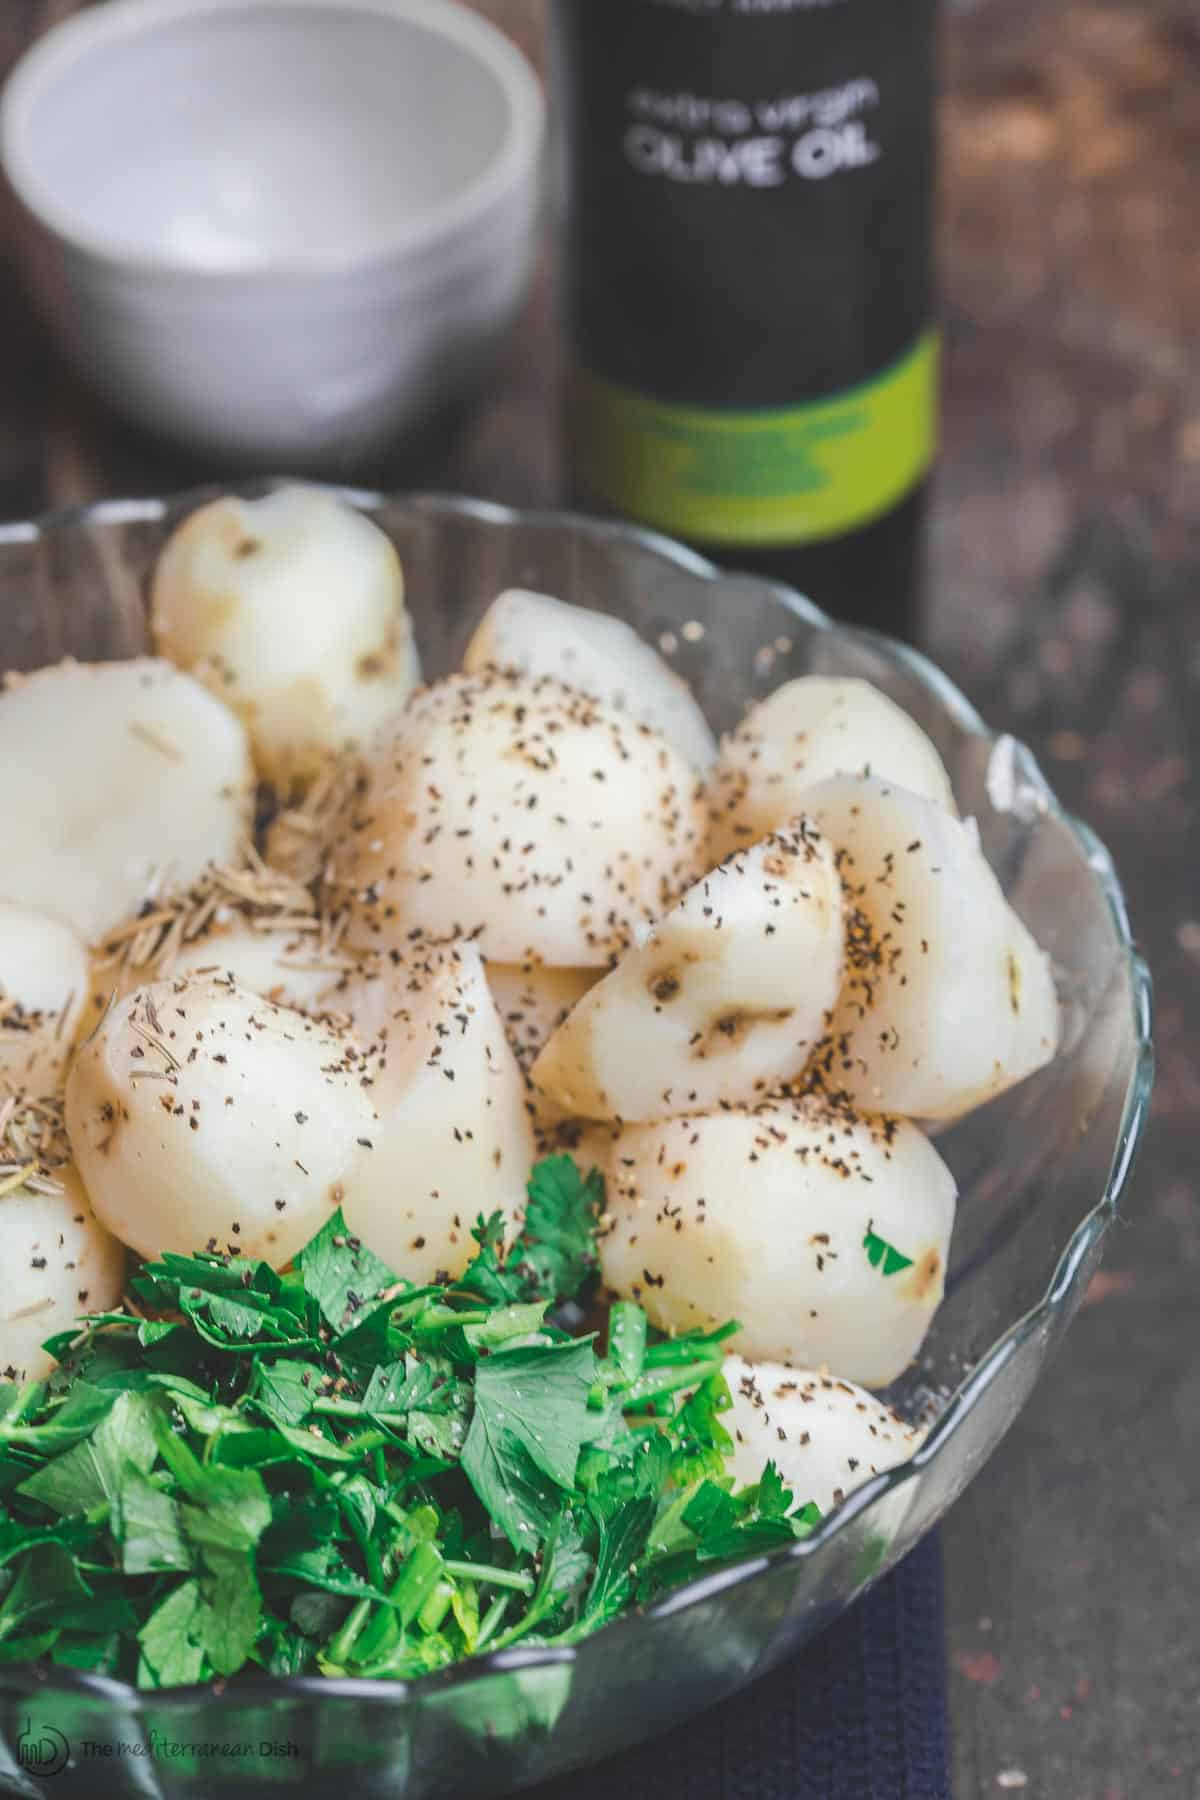 Boiled potatoes in a bowl with spices and fresh parsley. Olive oil ready for use